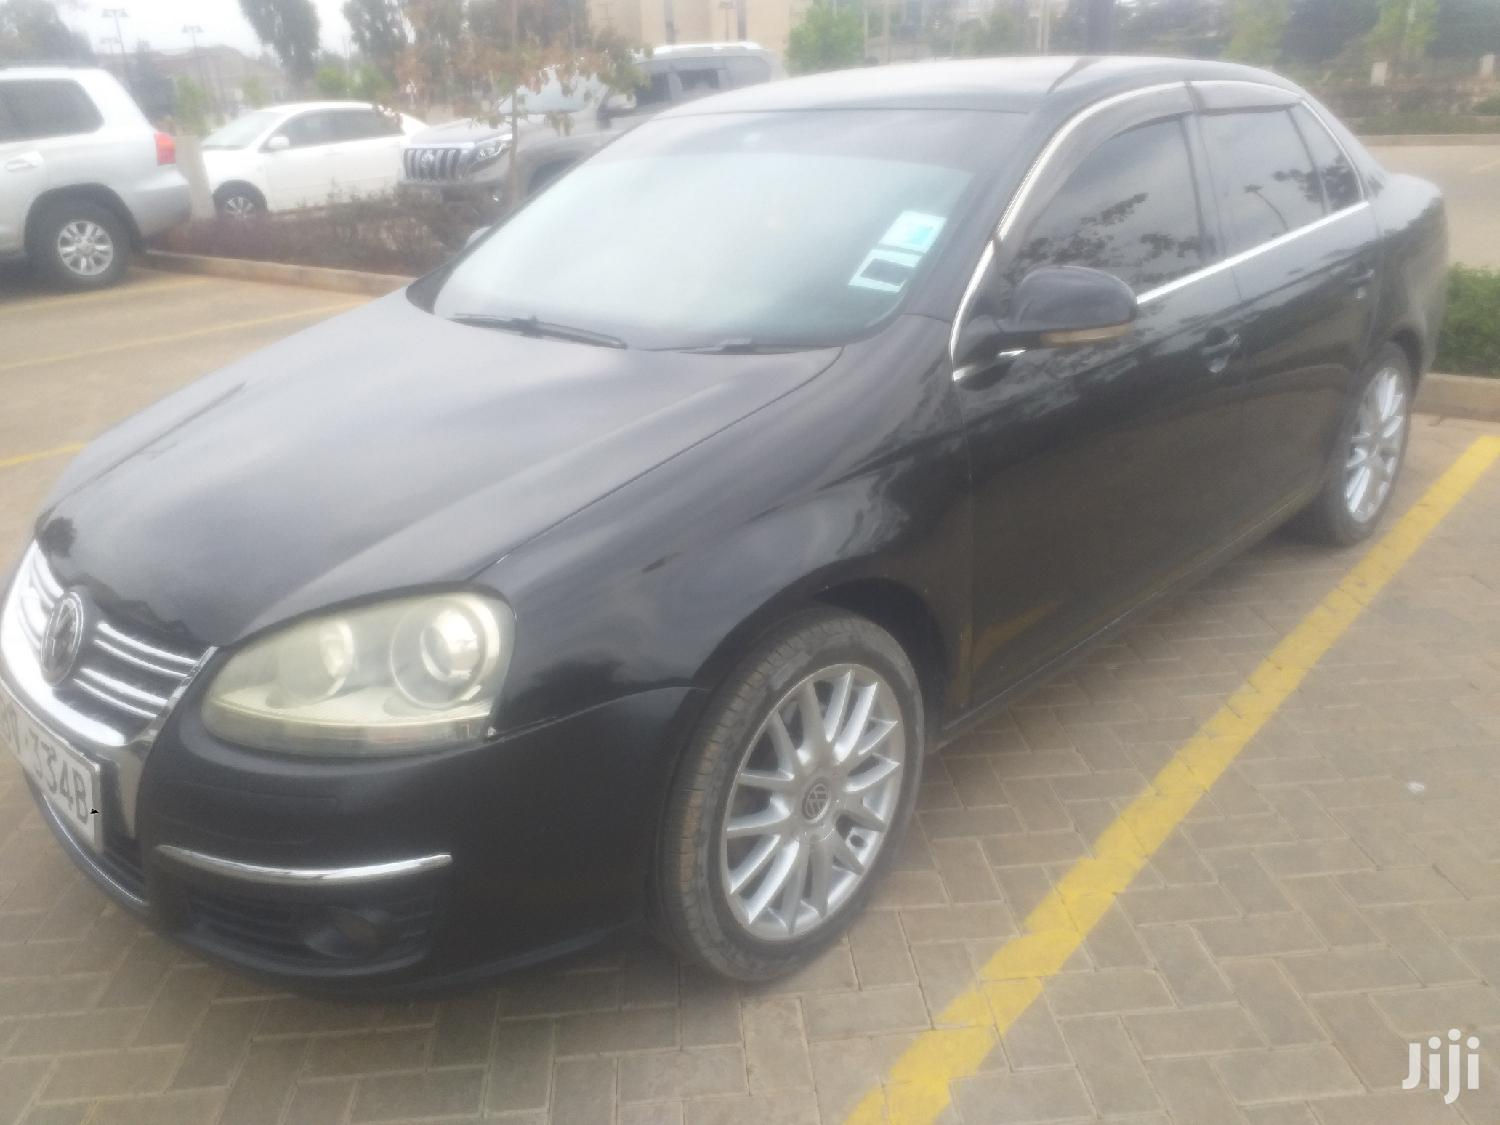 Volkswagen Jetta 2 0t Fsi 2006 Black In Nairobi Central Cars Rufus Alukwe Jiji Co Ke For Sale In Nairobi Central Buy Cars From Rufus Alukwe On Jiji Co Ke